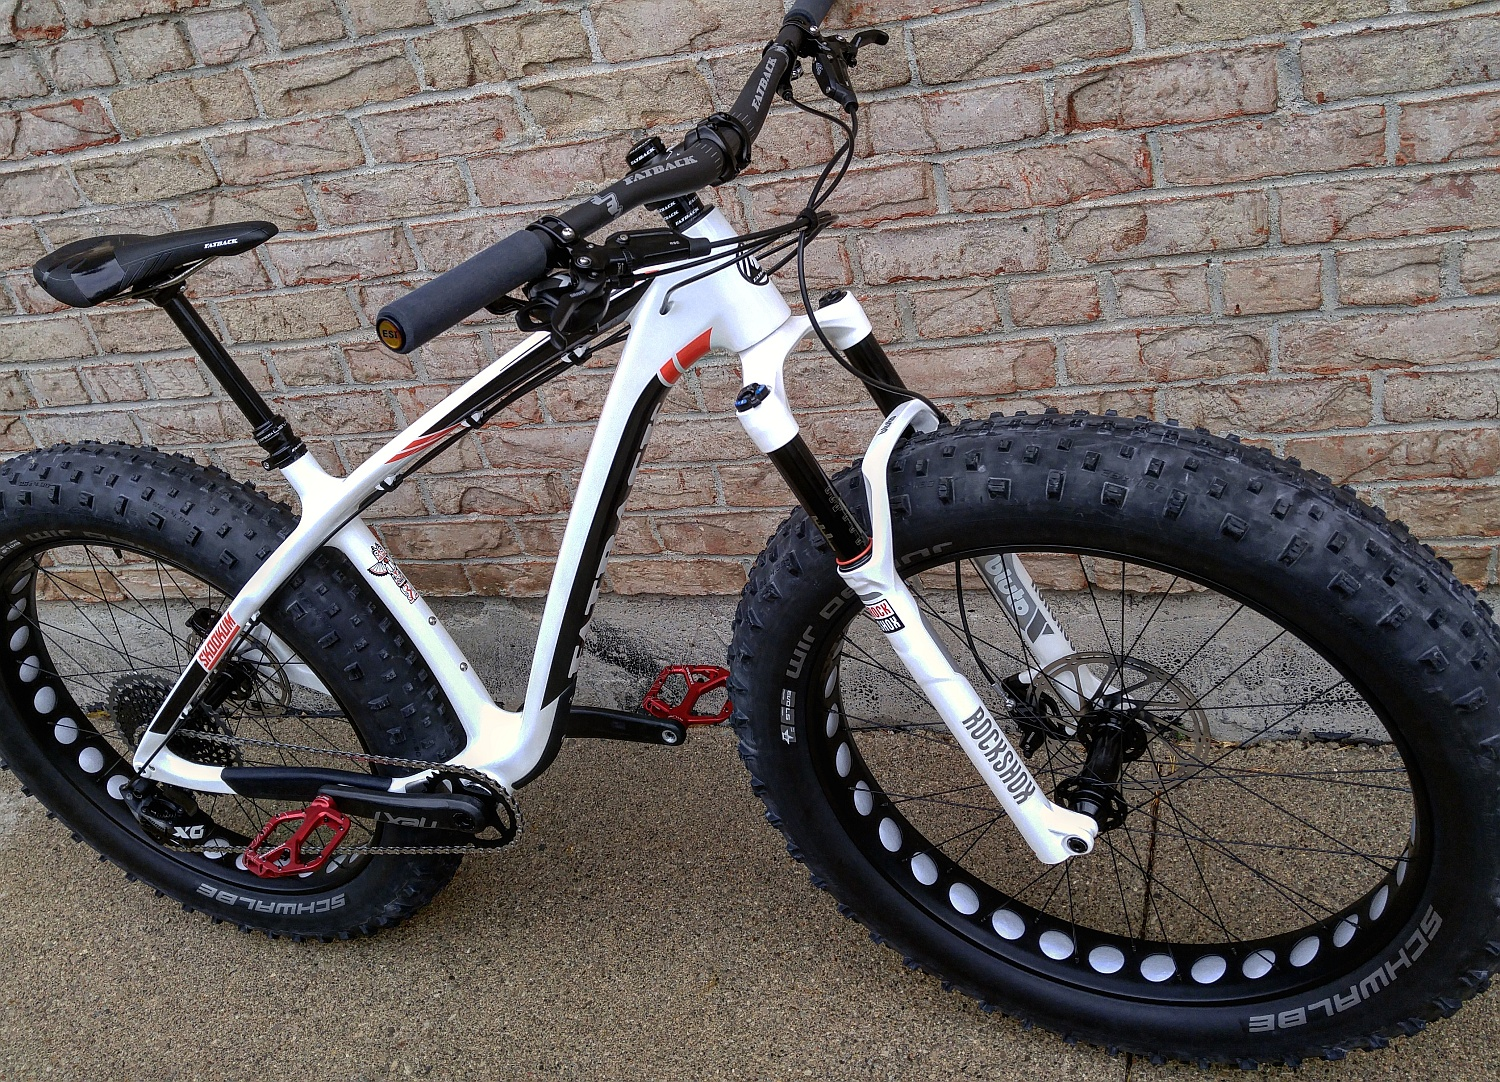 Air suspension fork 20 inch FAT bike shock